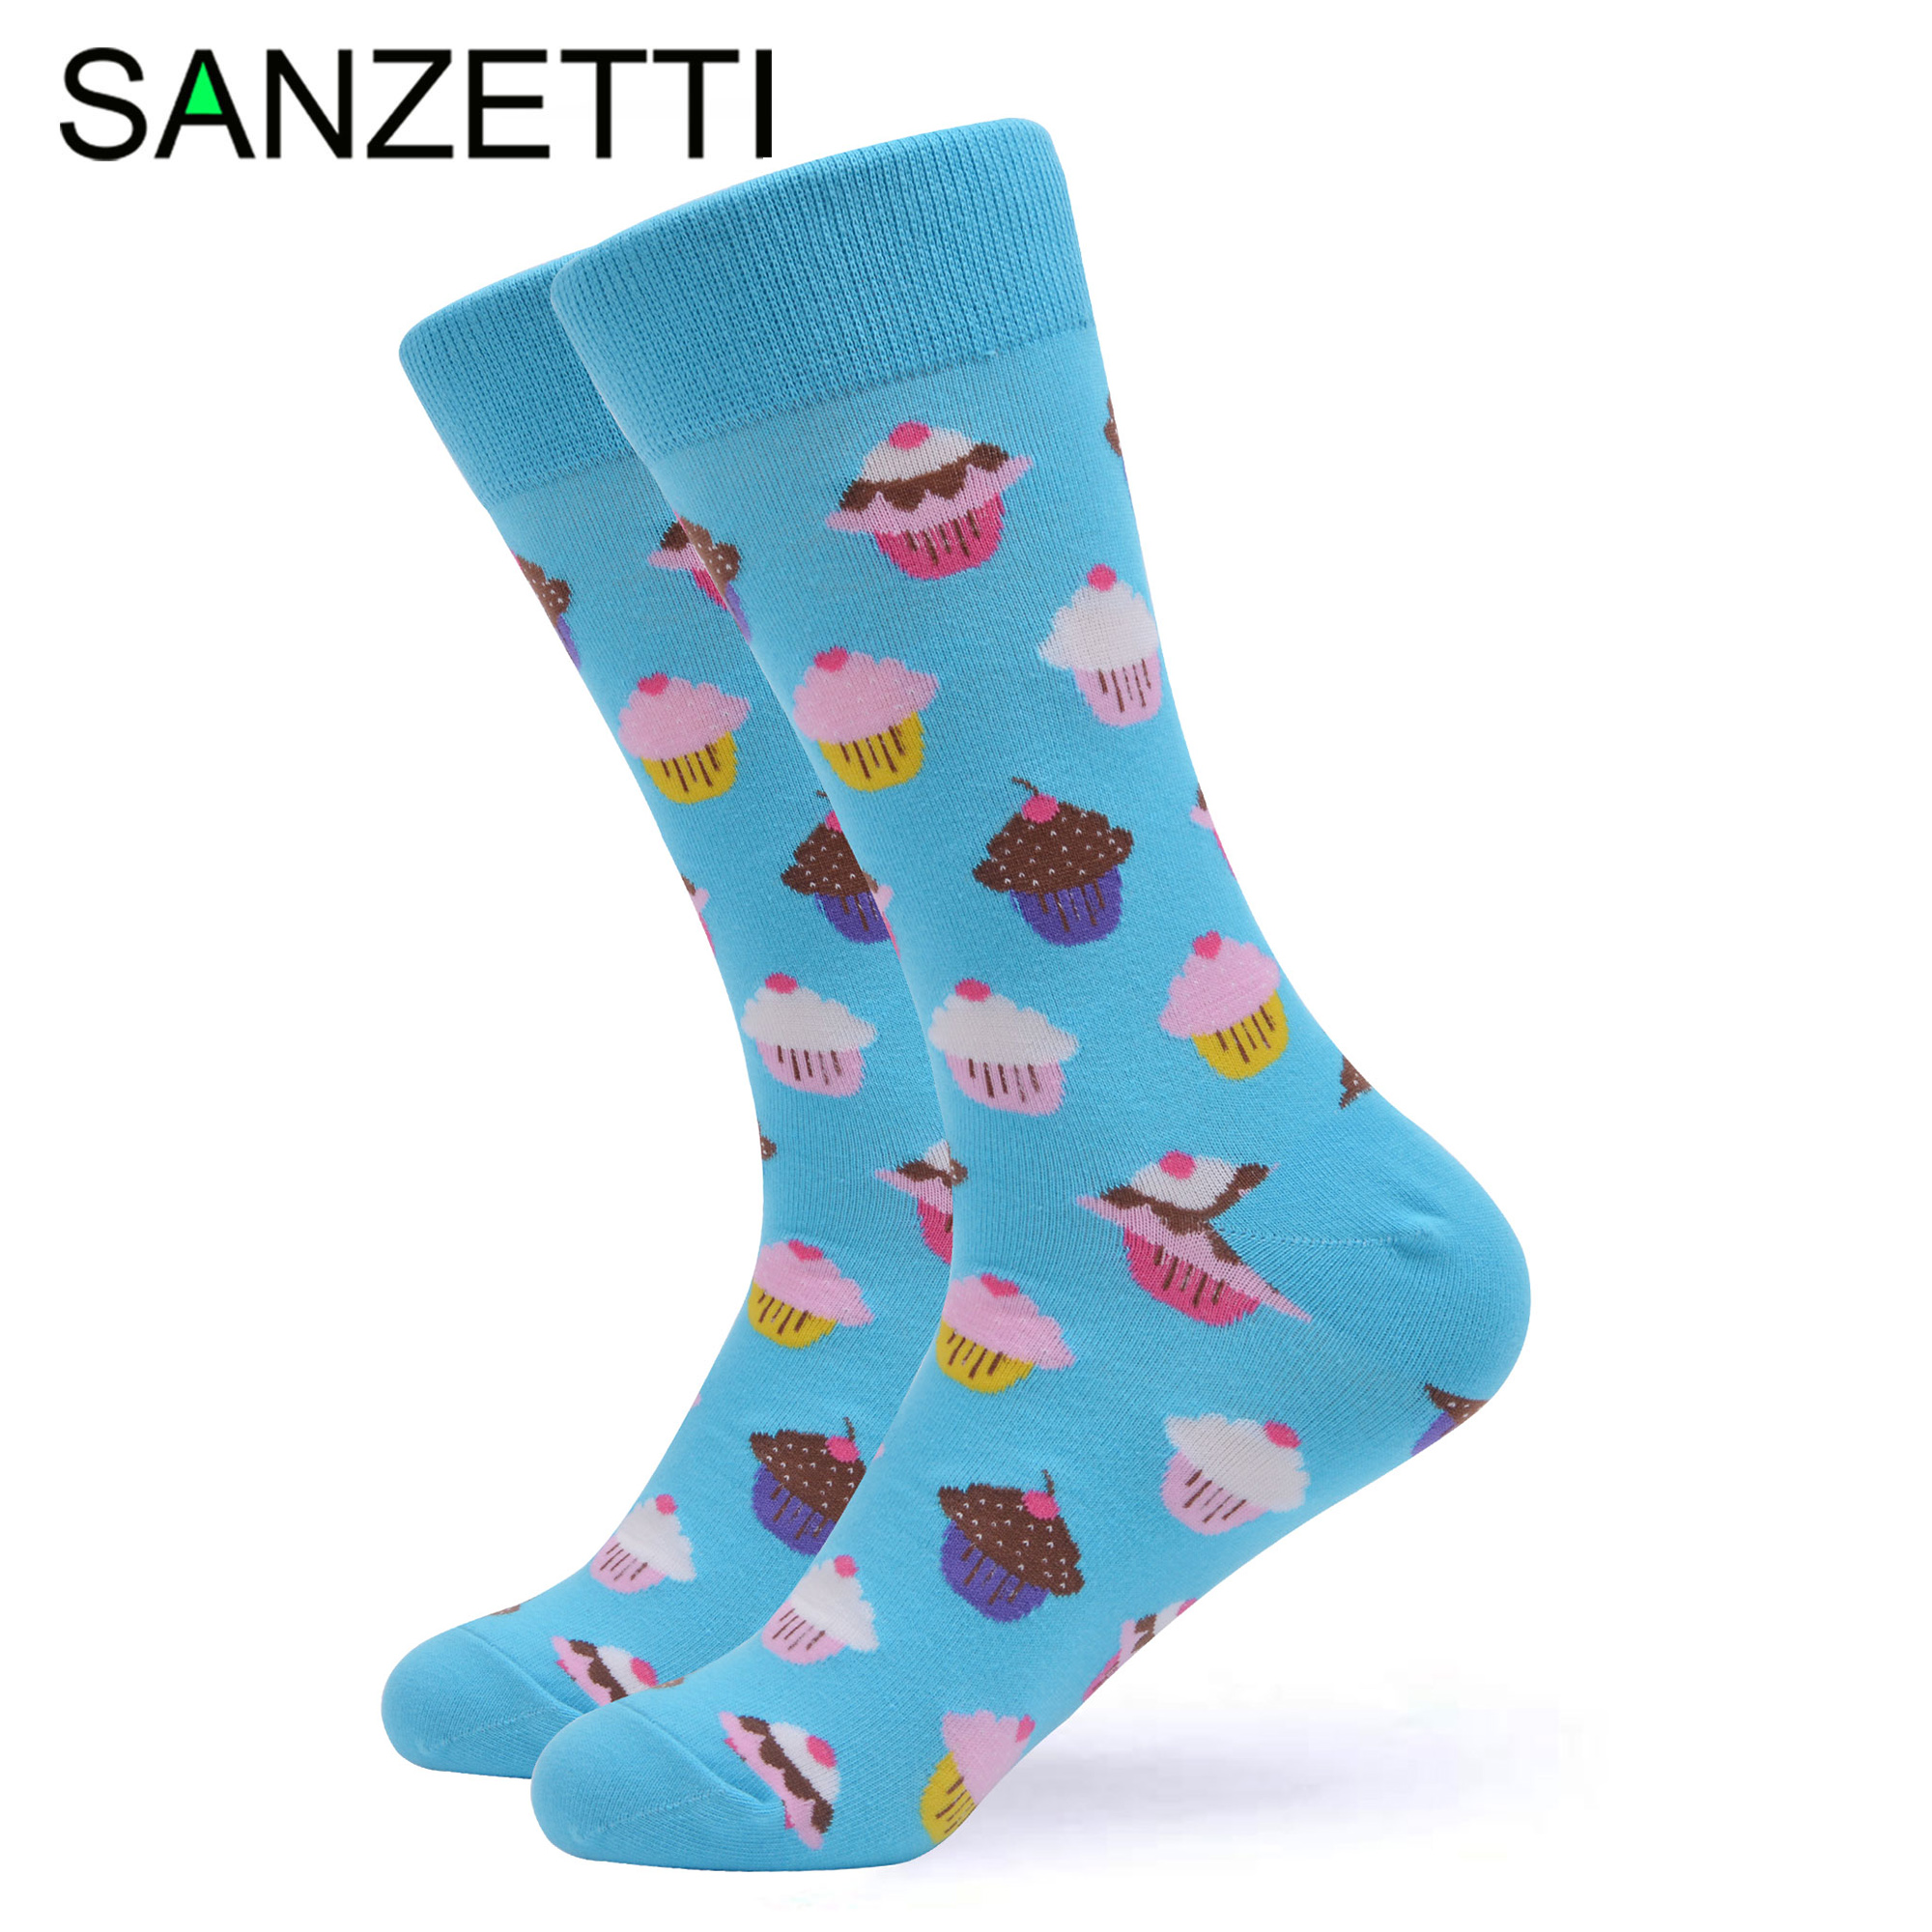 SANZETTI 1 Pair Colorful Bright Women Socks Novelty Combed Cotton Cute Party Cake Coffee Pattern Gifts Wedding Dress Happy Socks